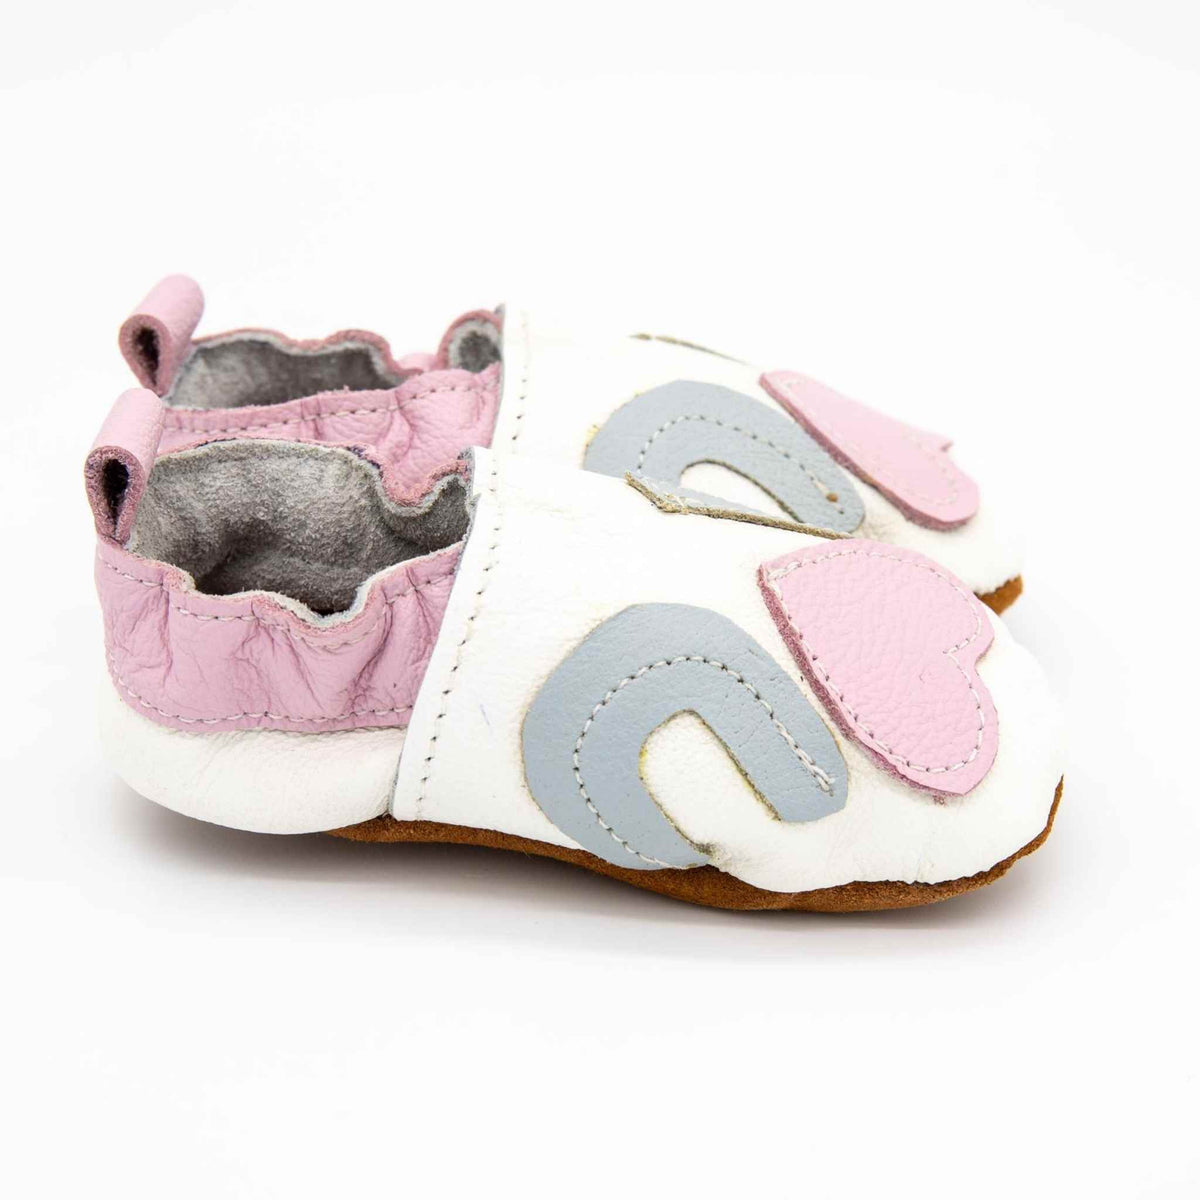 Soft soled leather shoes - Small (0 - 6 months).